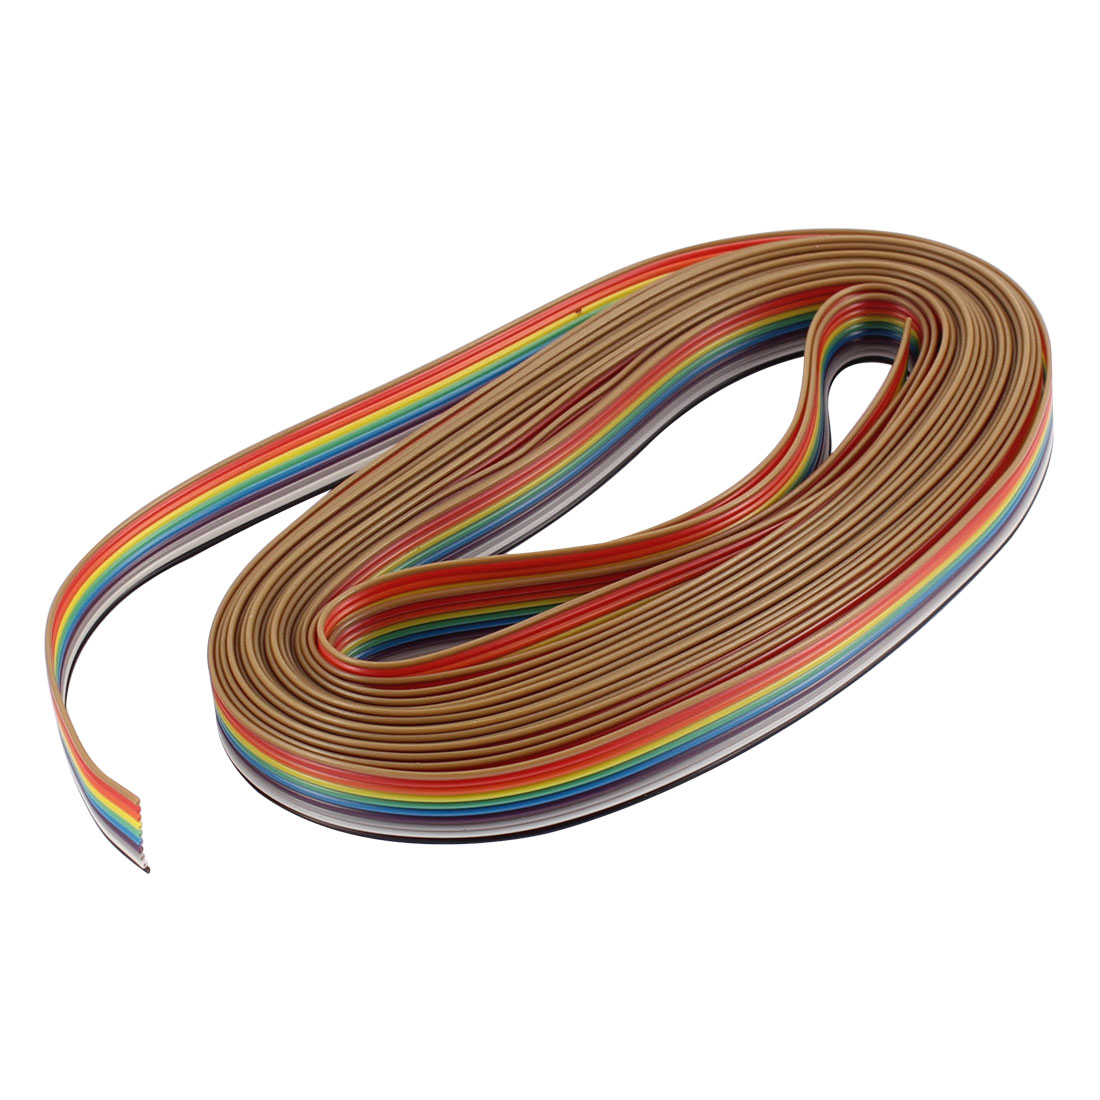 18Ft 10 Pin 1.27mm Pitch 12mm Wide IDC Ribbon Cable for ISP JTAG ARM